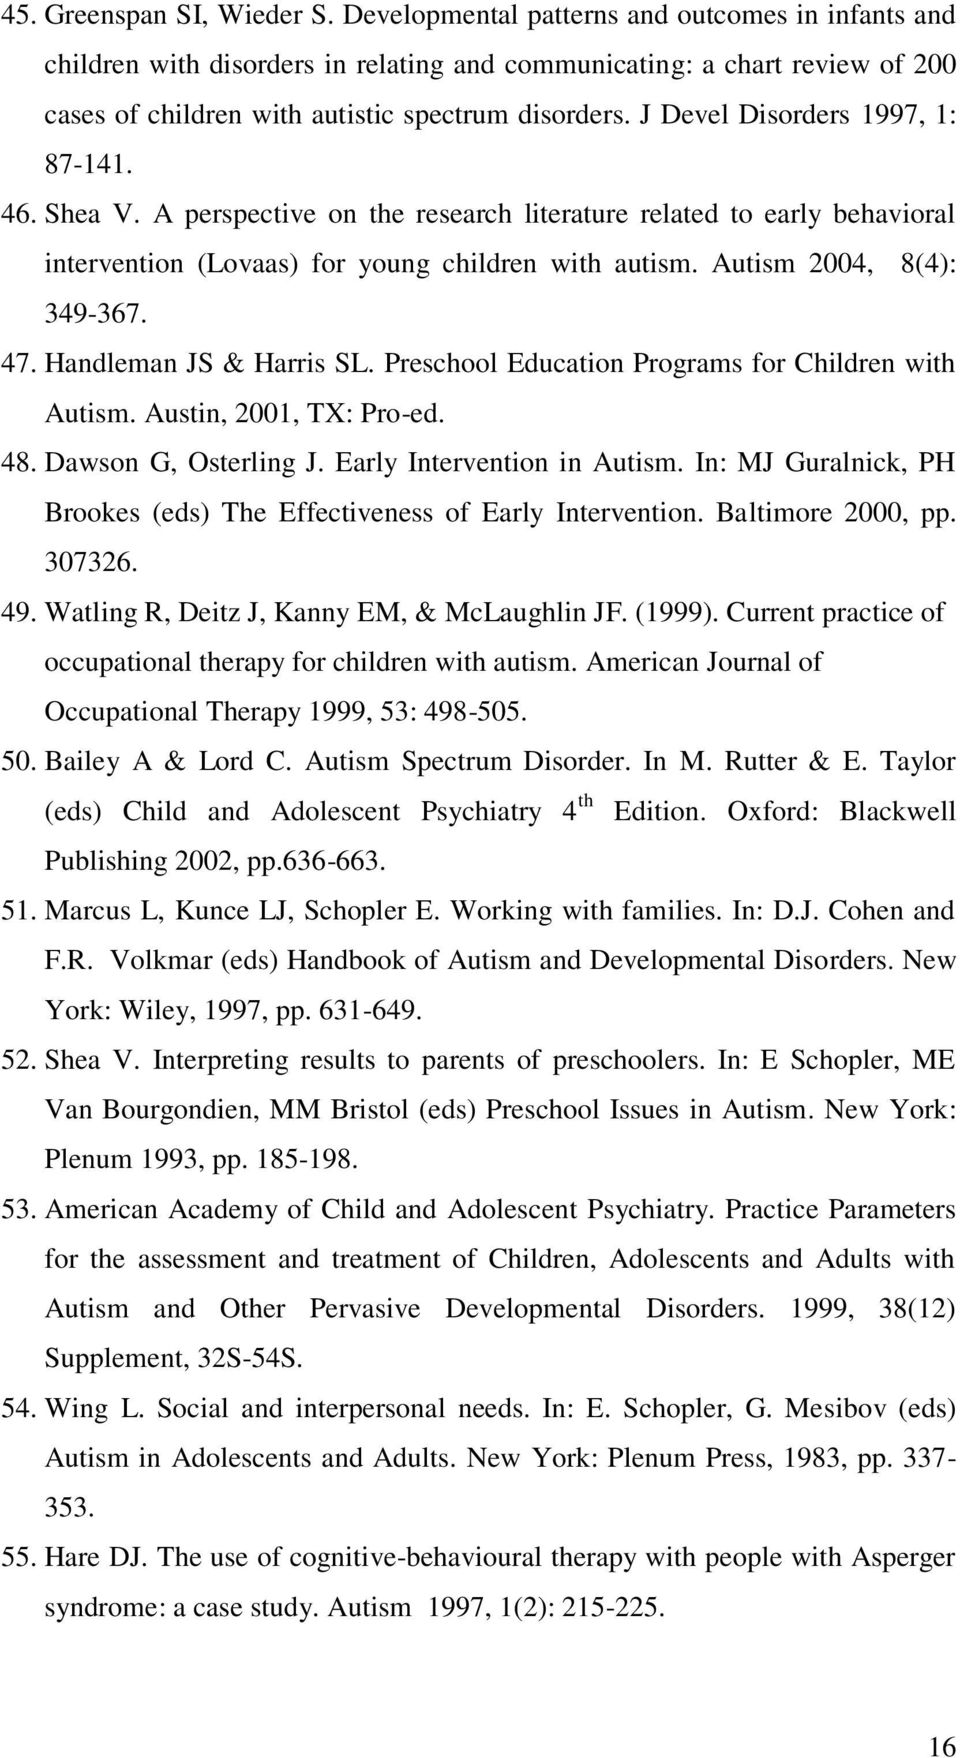 J Devel Disorders 1997, 1: 87-141. 46. Shea V. A perspective on the research literature related to early behavioral intervention (Lovaas) for young children with autism. Autism 2004, 8(4): 349-367.